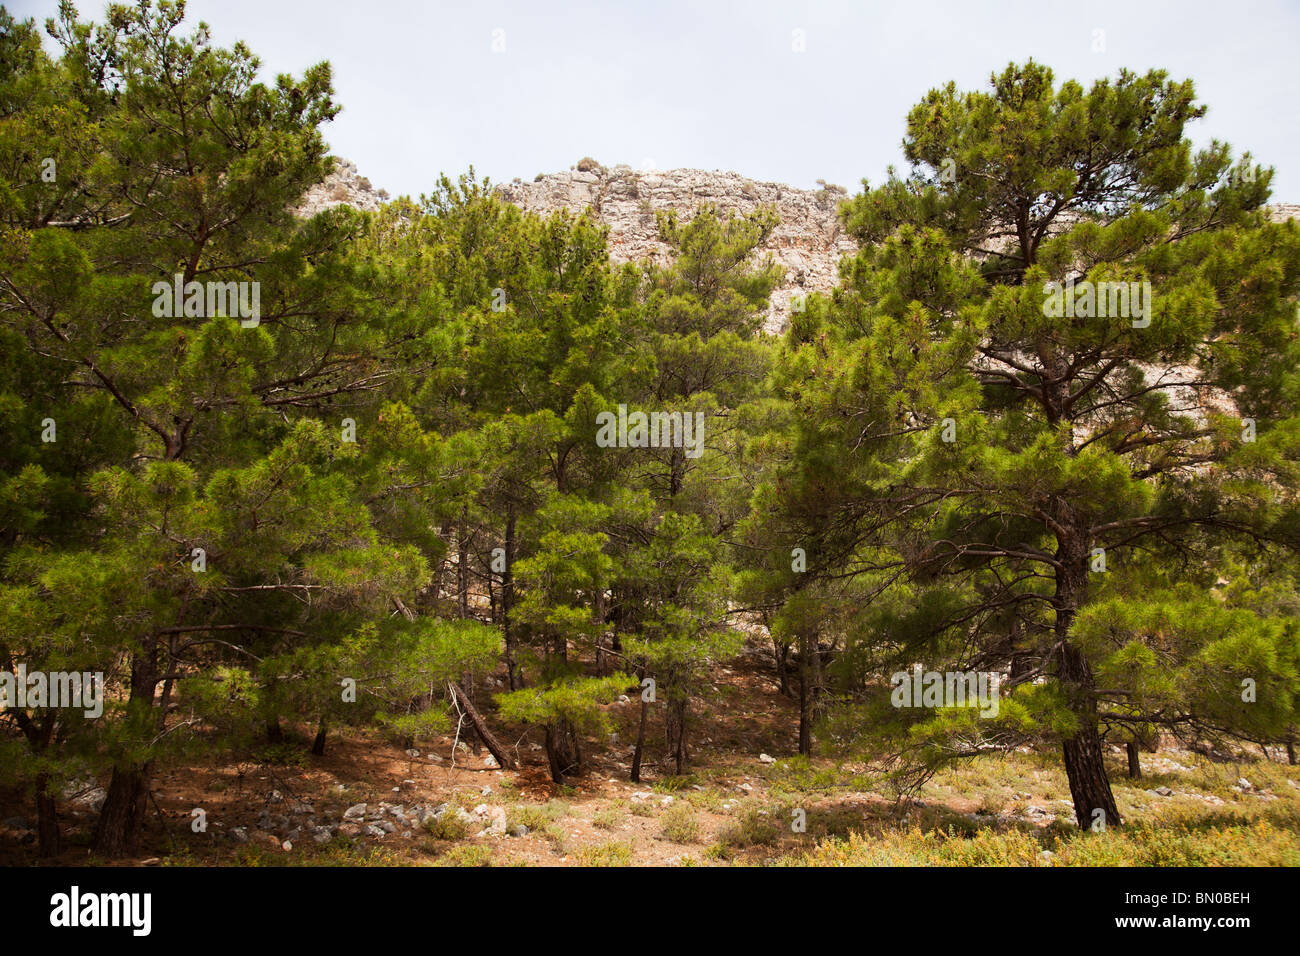 Pine forest pine trees Rhodes Greece - Stock Image